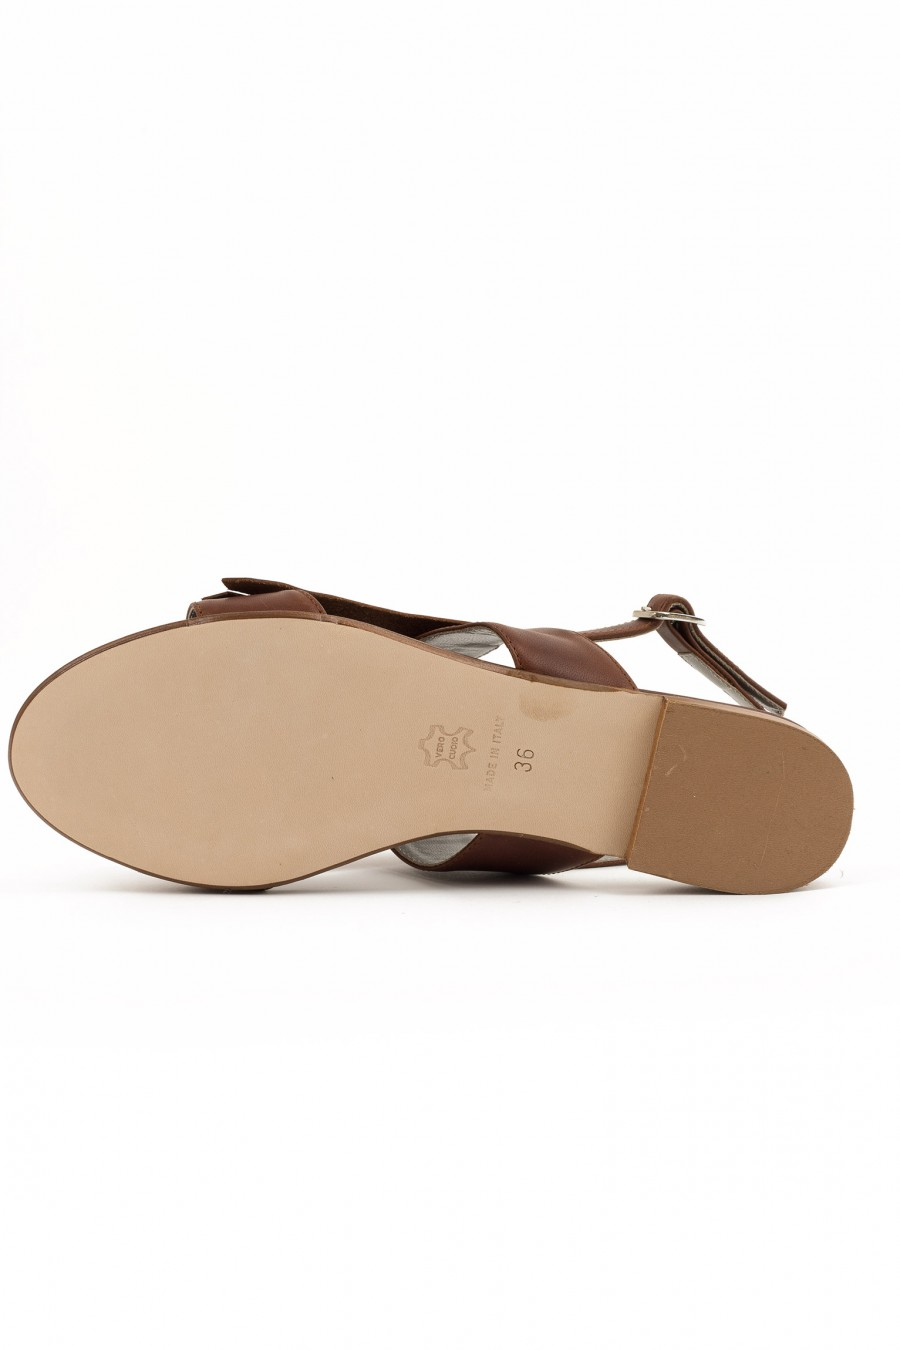 Made in Italy flat sandal